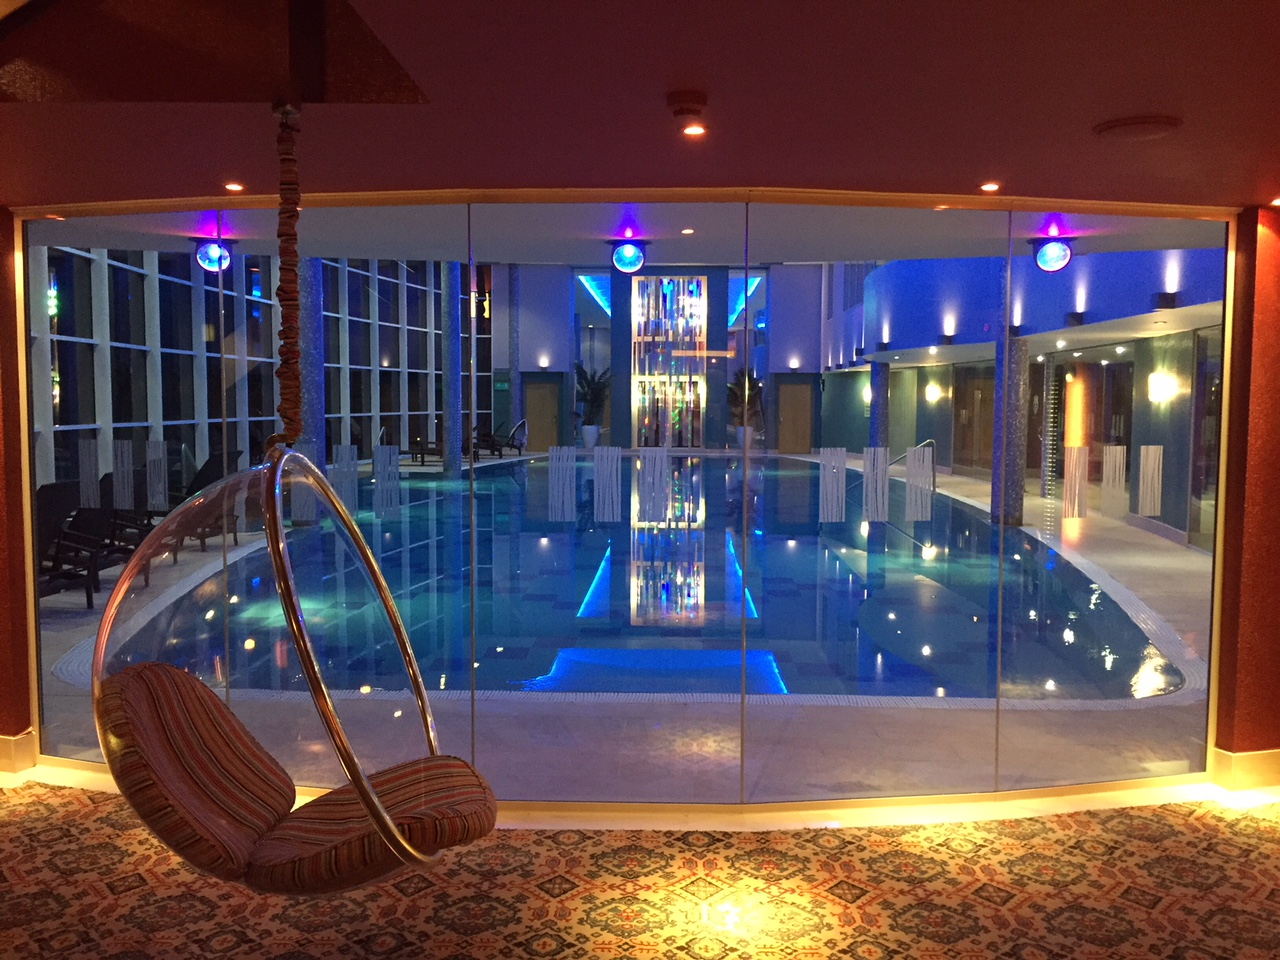 Stobo castle luxury spa review - Luxury scottish hotels with swimming pools ...